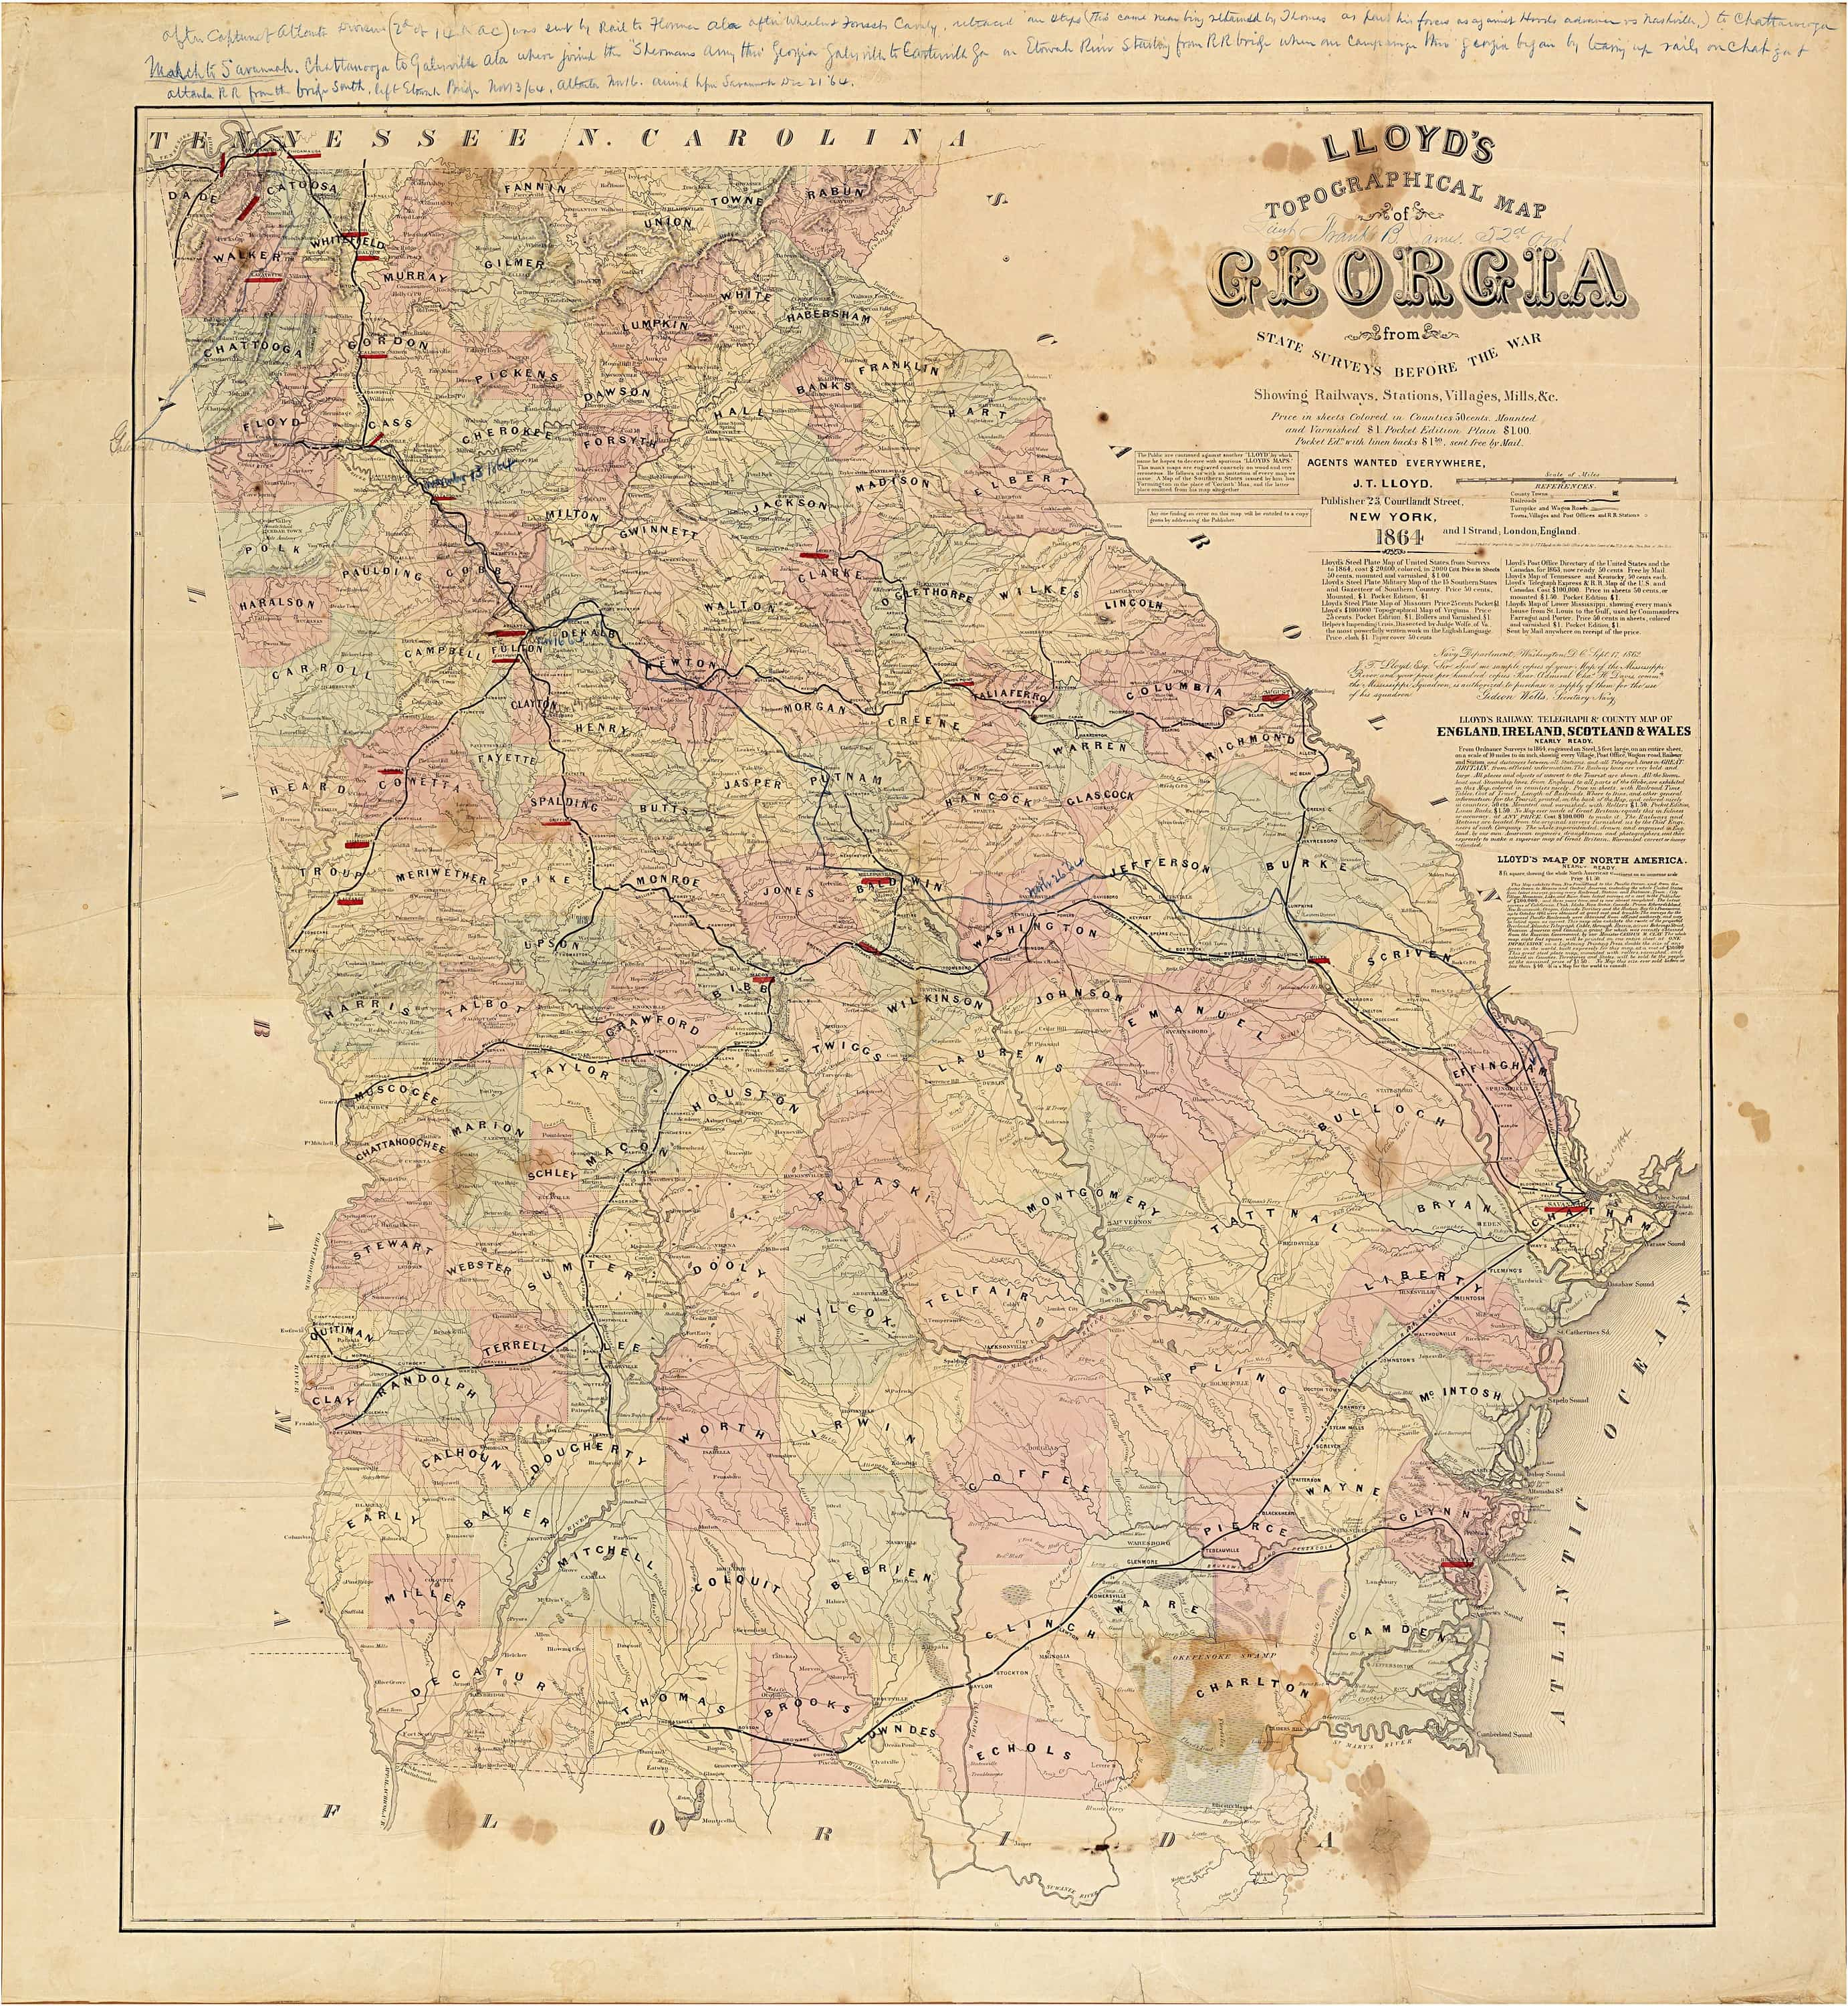 Important Civil Warera Maps Of Tennessee And Georgia With Unique - Map of atlanta civil war